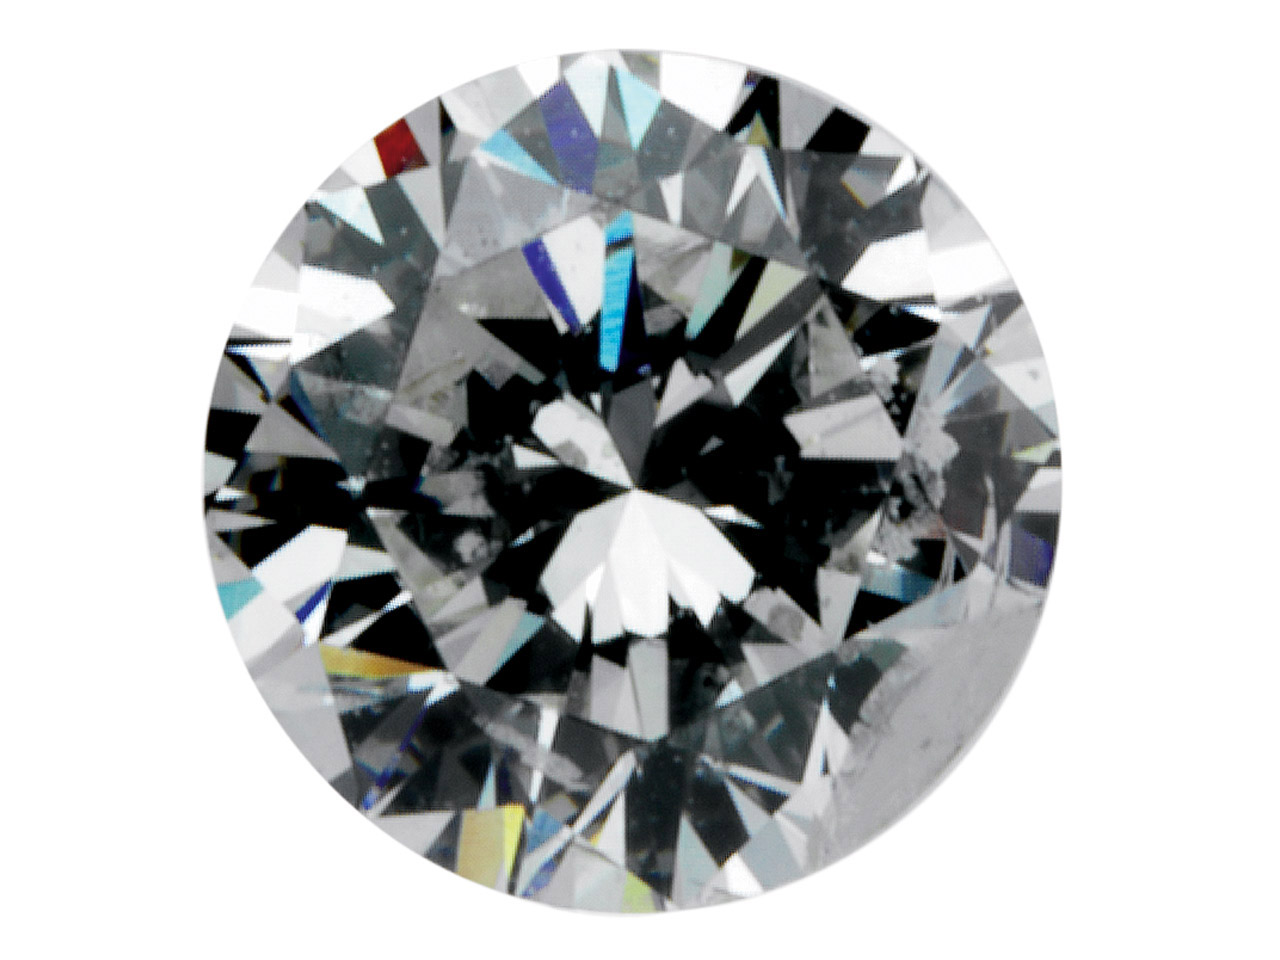 Diamond, Round, G/vs, 0.5pt/1mm